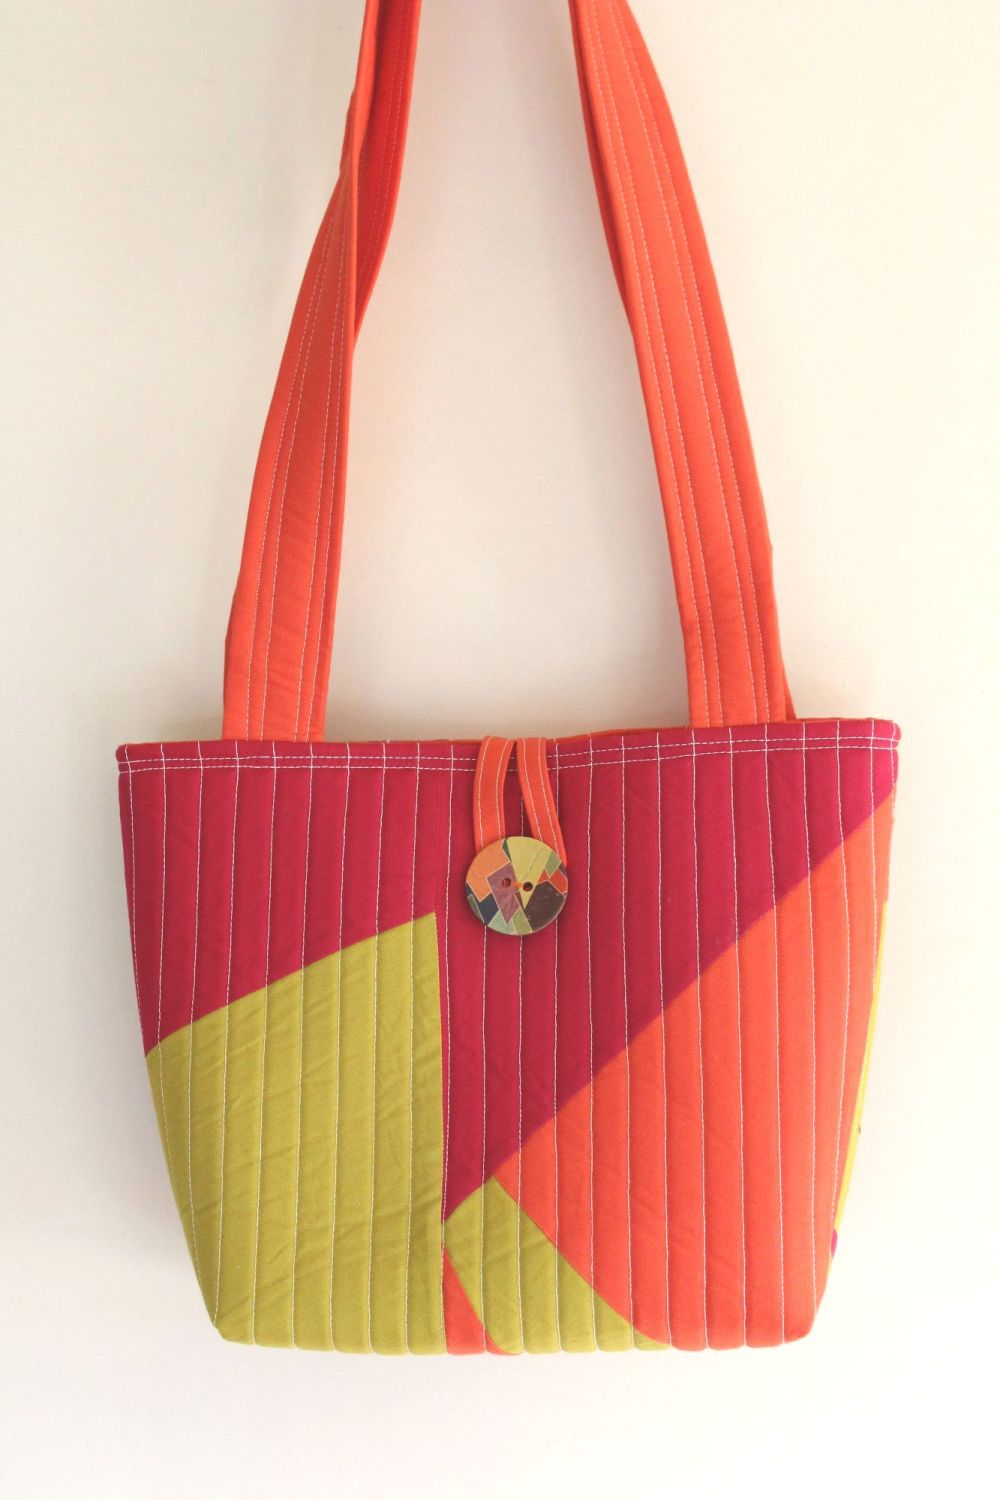 Small Tote Bag in Orange Pink and Pickle(1)